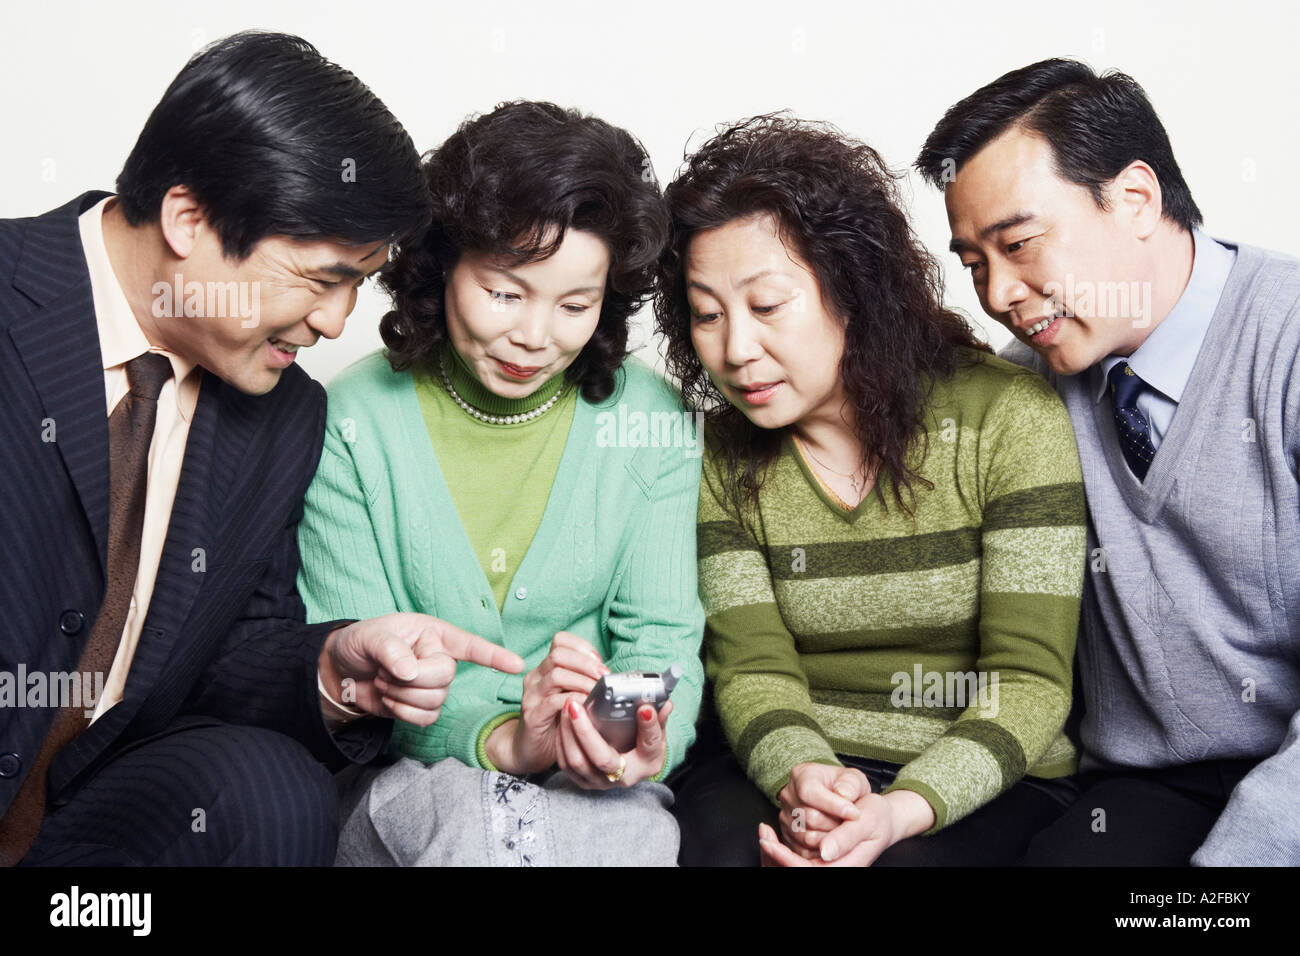 Close-up of two mature couples sitting together looking at a mobile phone Stock Photo